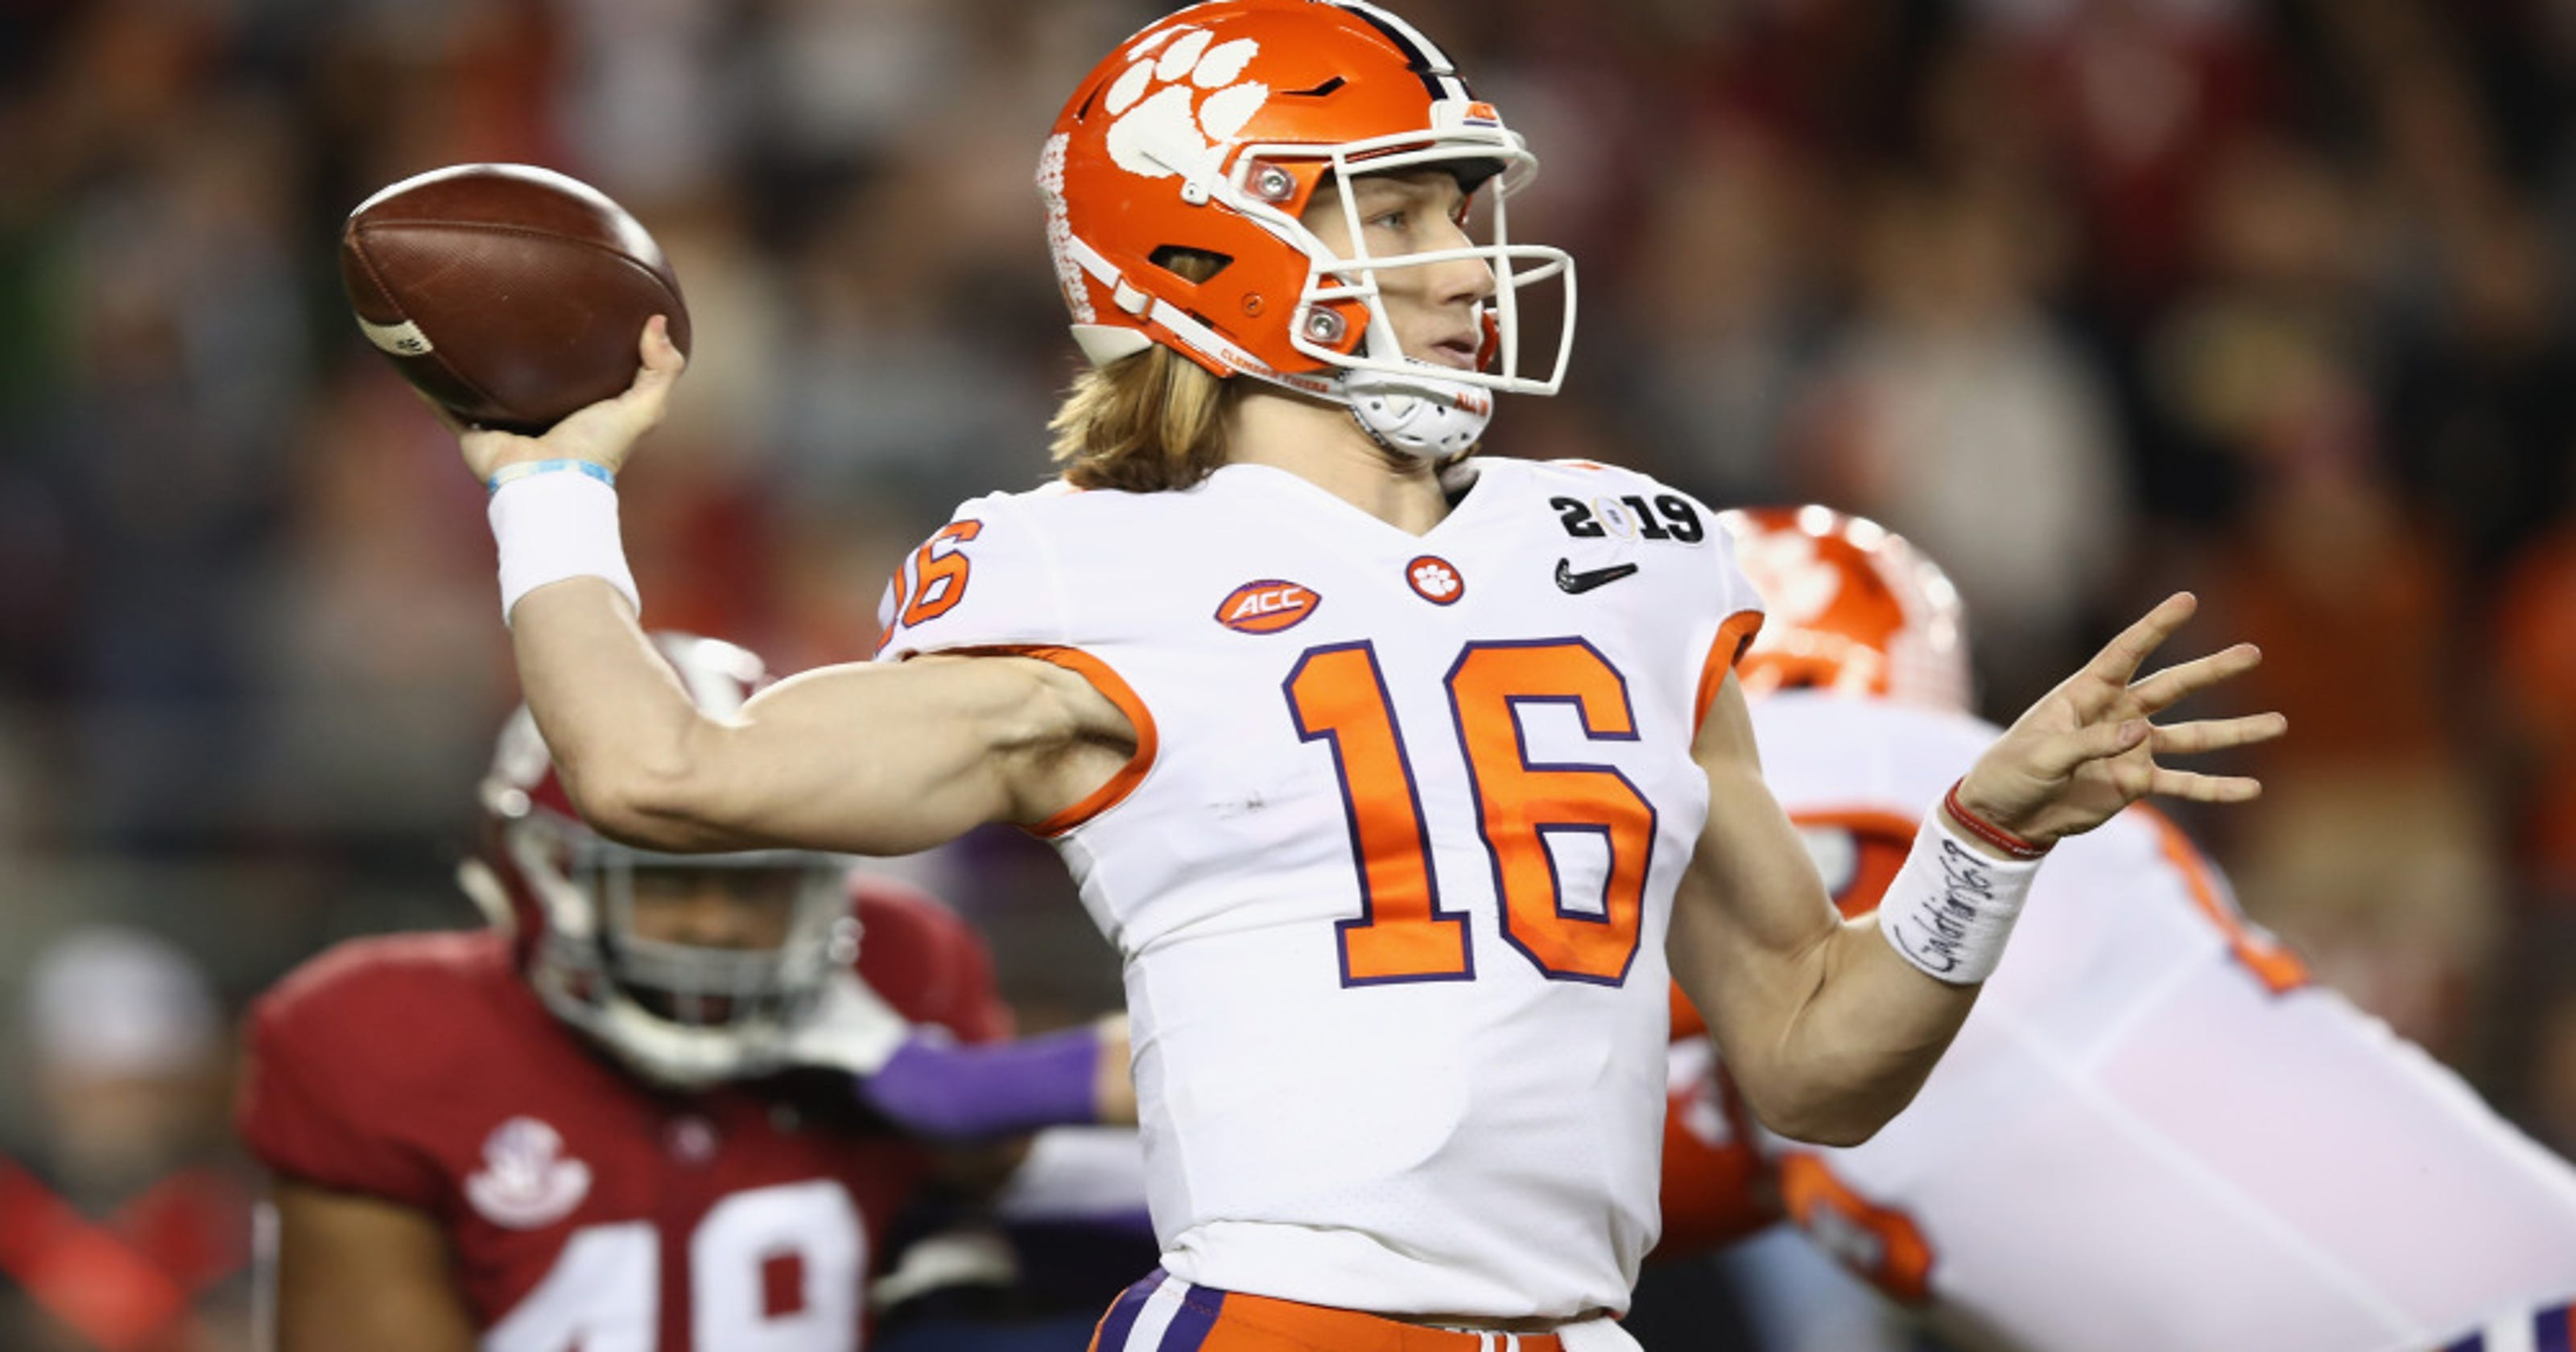 0366debc574 Trevor Lawrence's favorite QB is Peyton Manning, but the Tennessee native  chose Clemson